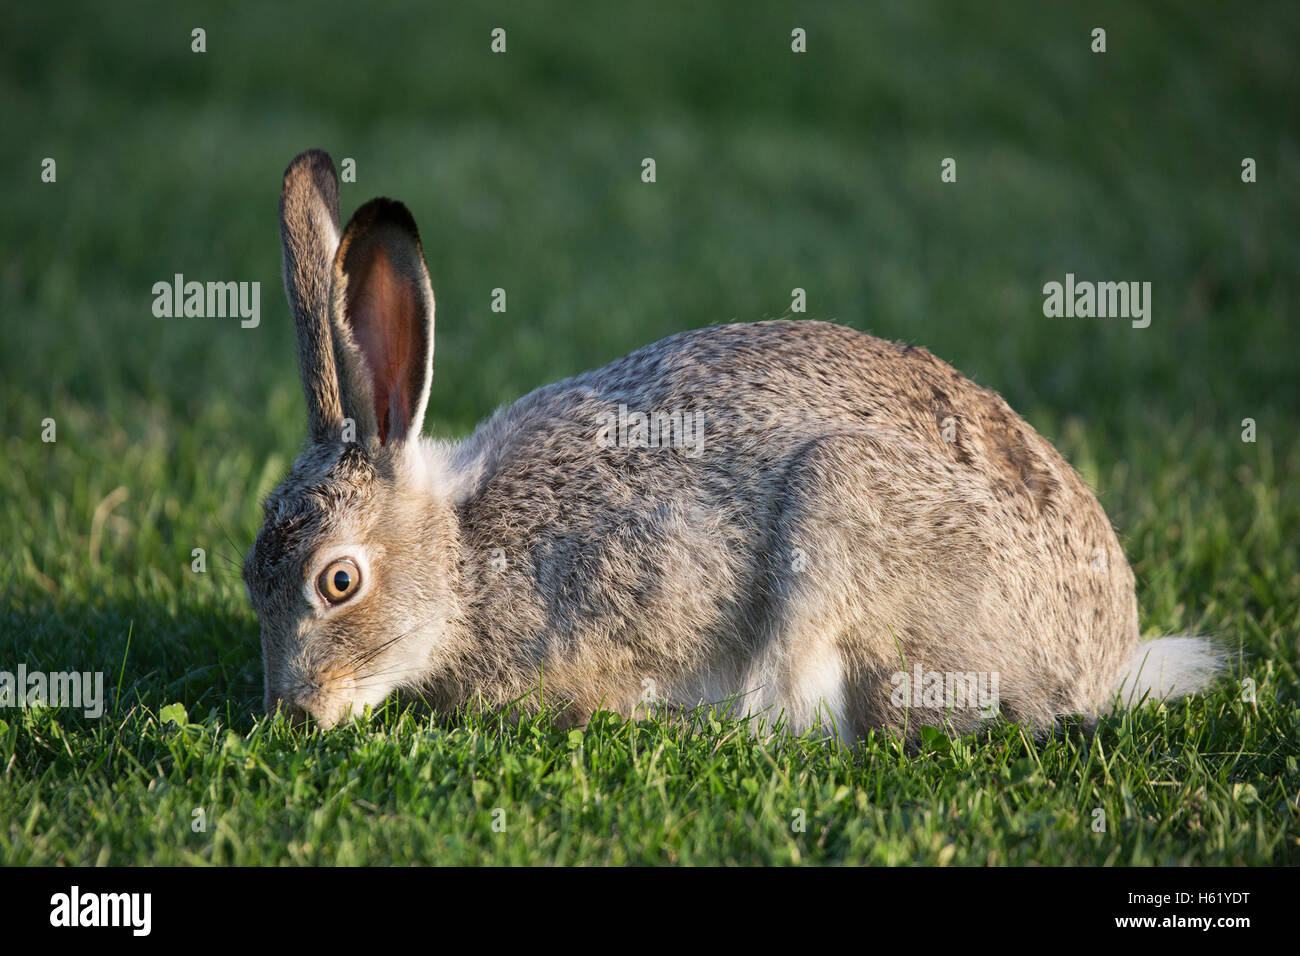 White tailed Jackrabbit (Lepus townsendi) grazing on urban lawn - Stock Image